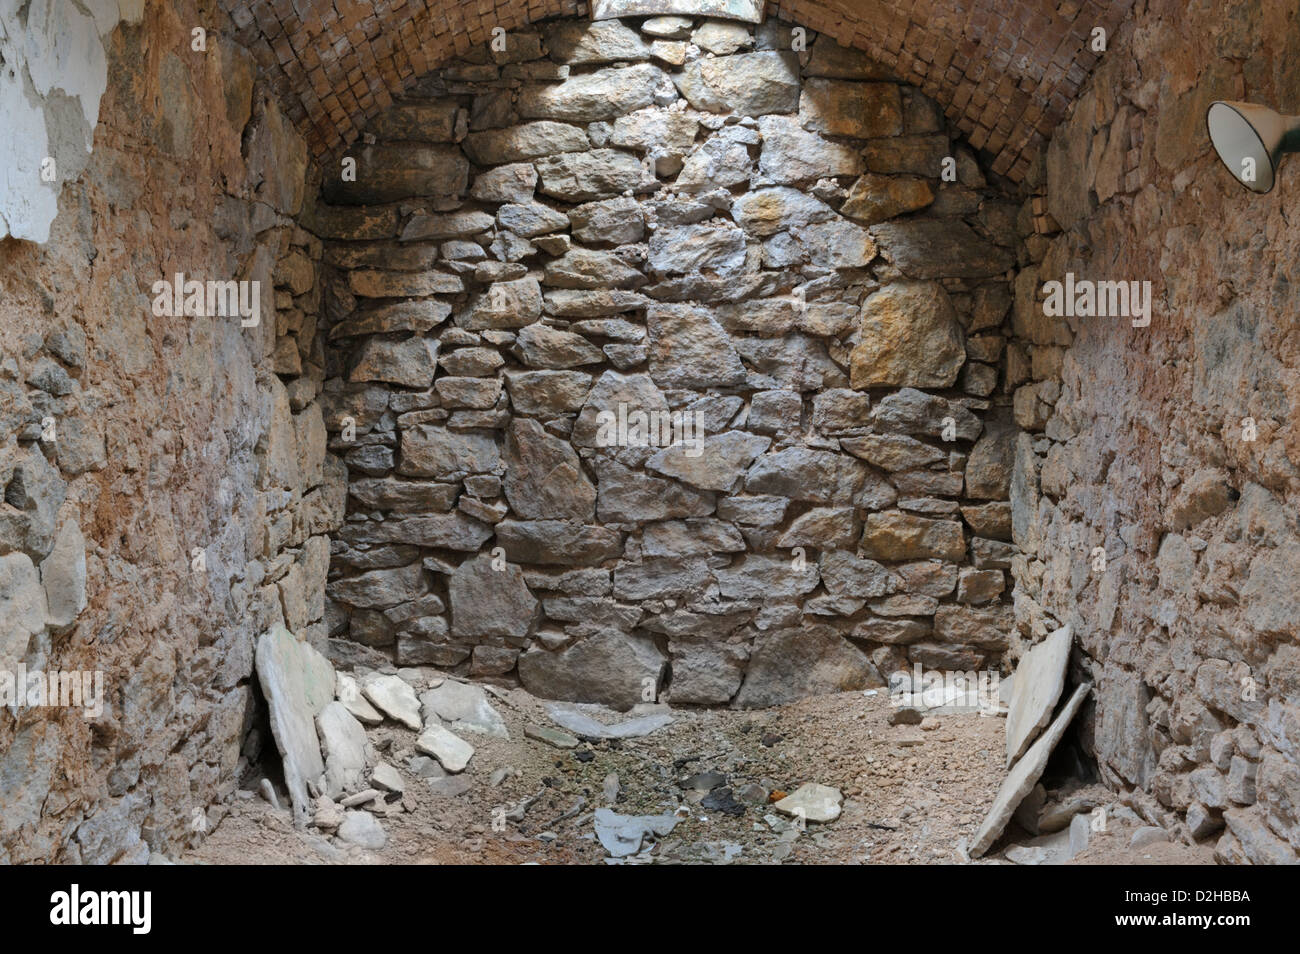 Prison cell rock wall of natural stone with overhead skylight, abandoned and deteriorating Eastern State Penitentiary - Stock Image